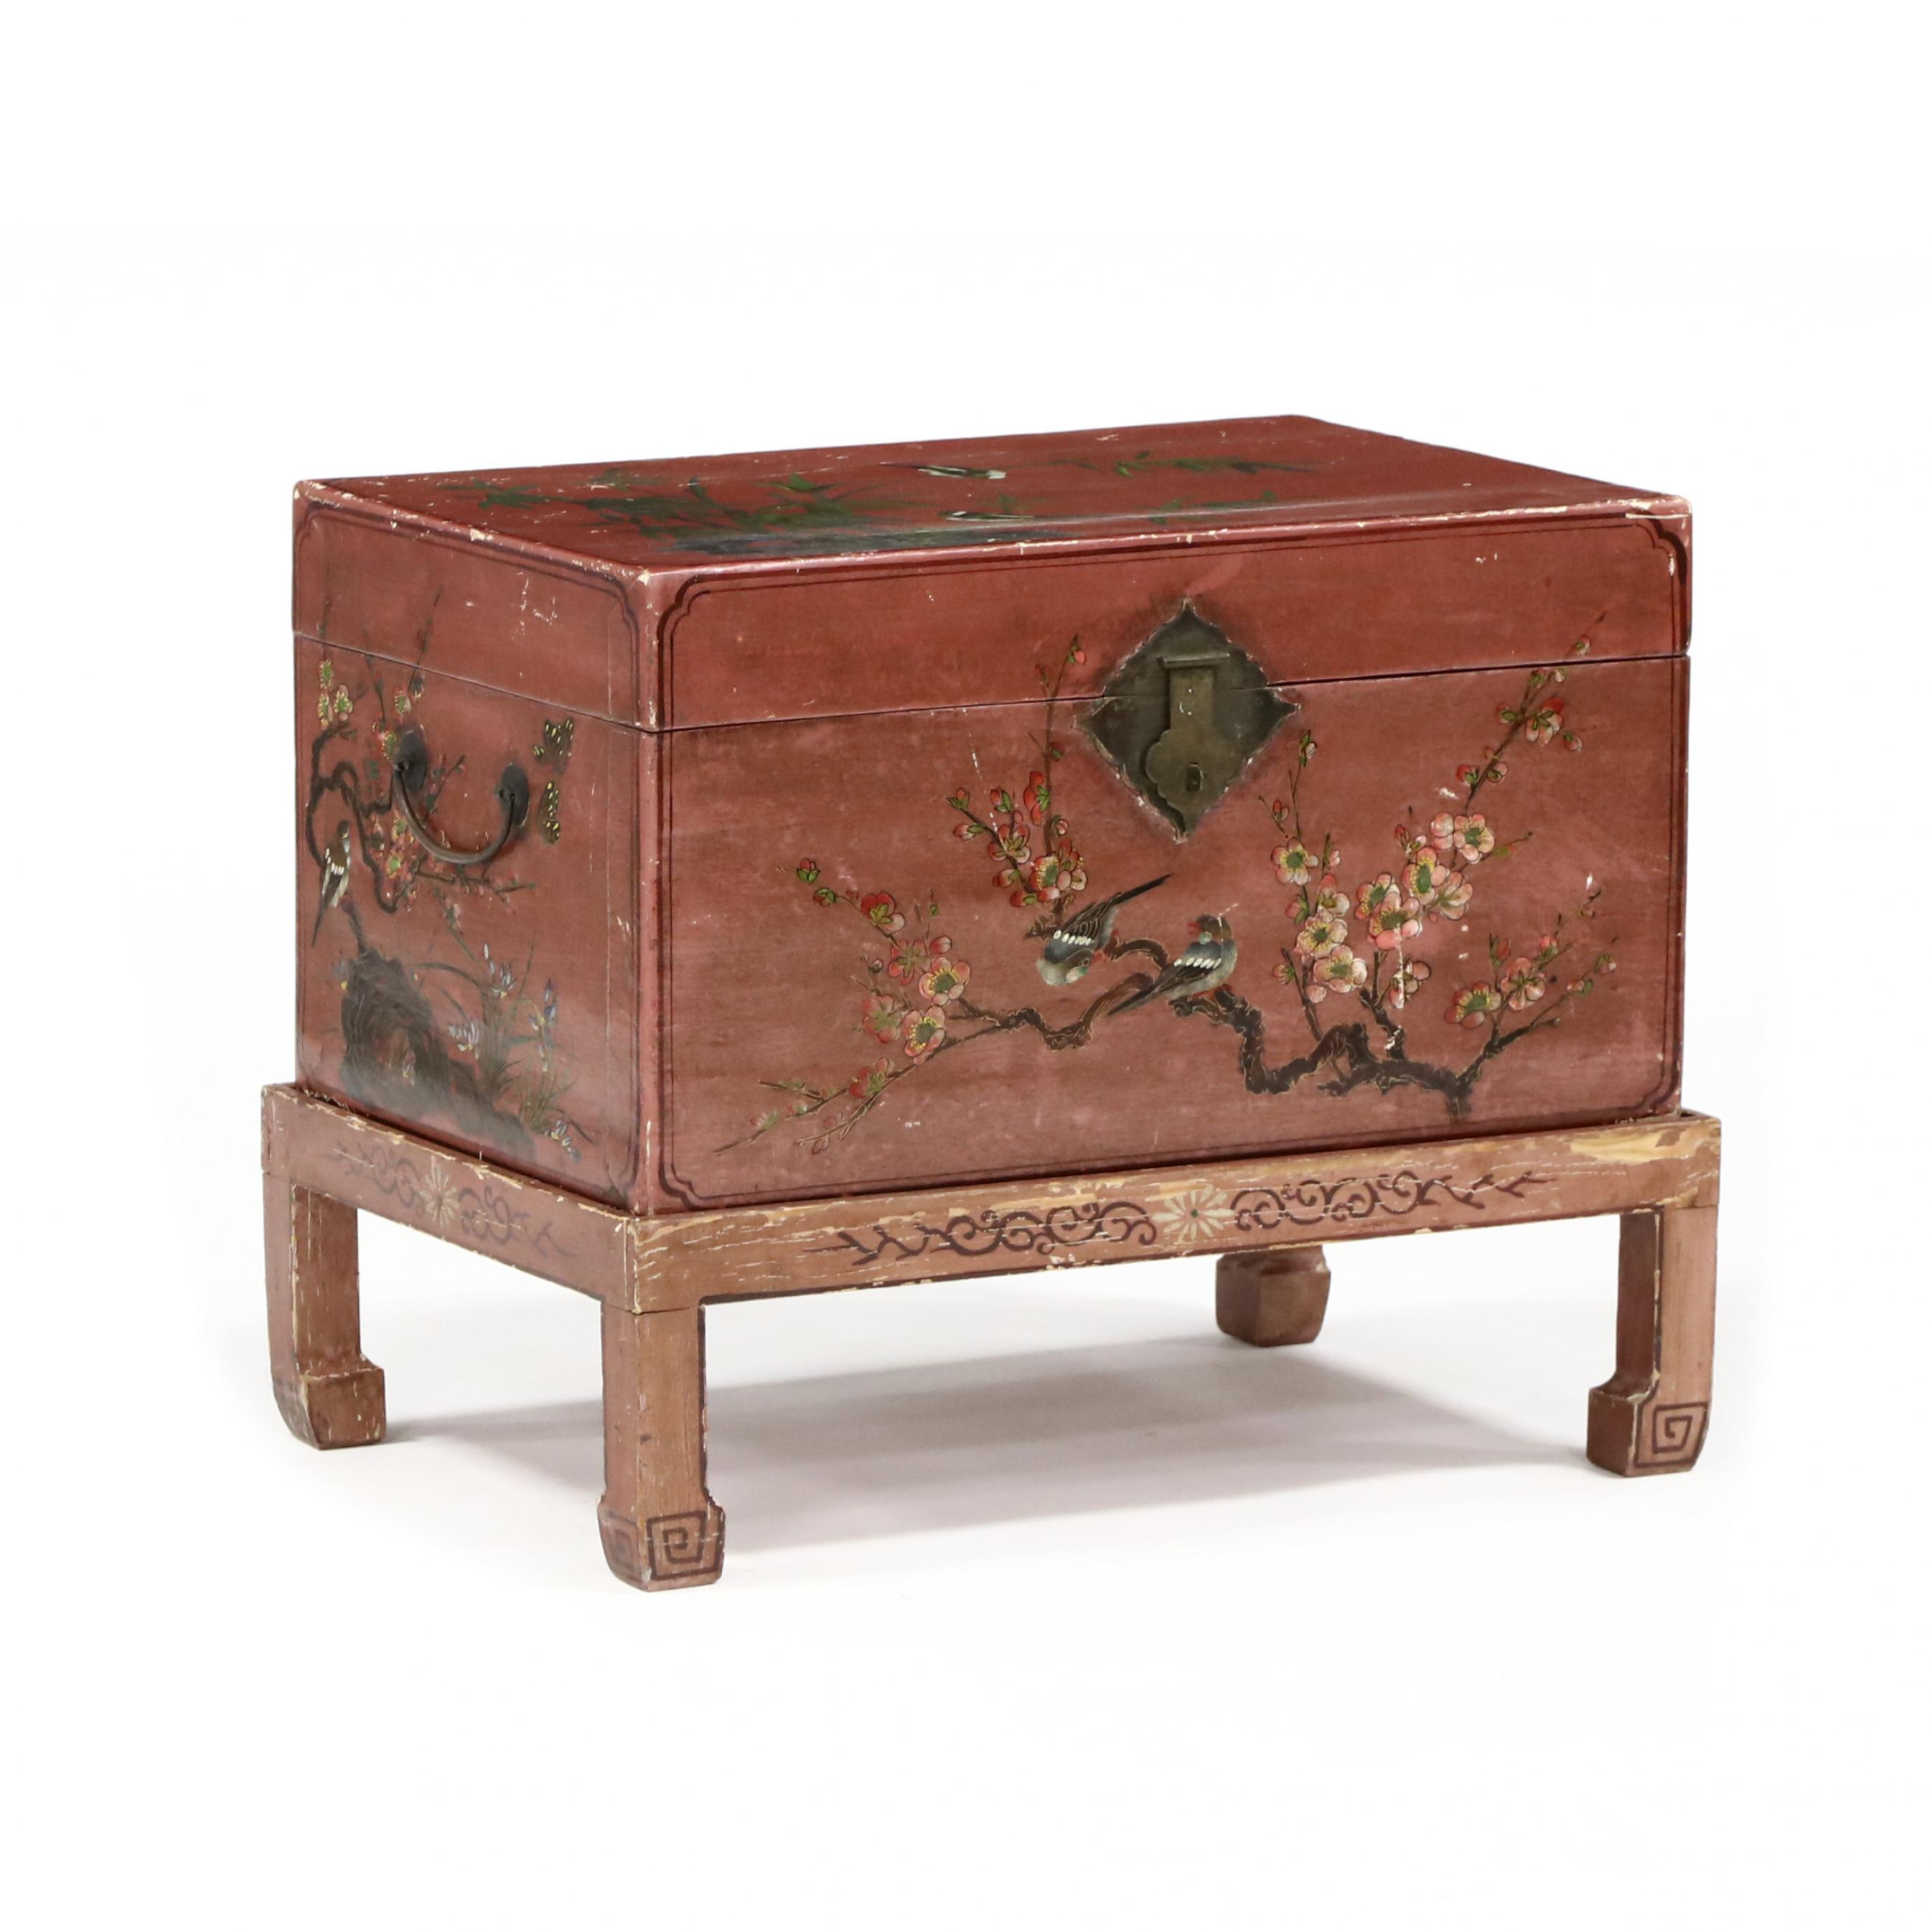 antique-chinese-painted-pigskin-trunk-on-stand